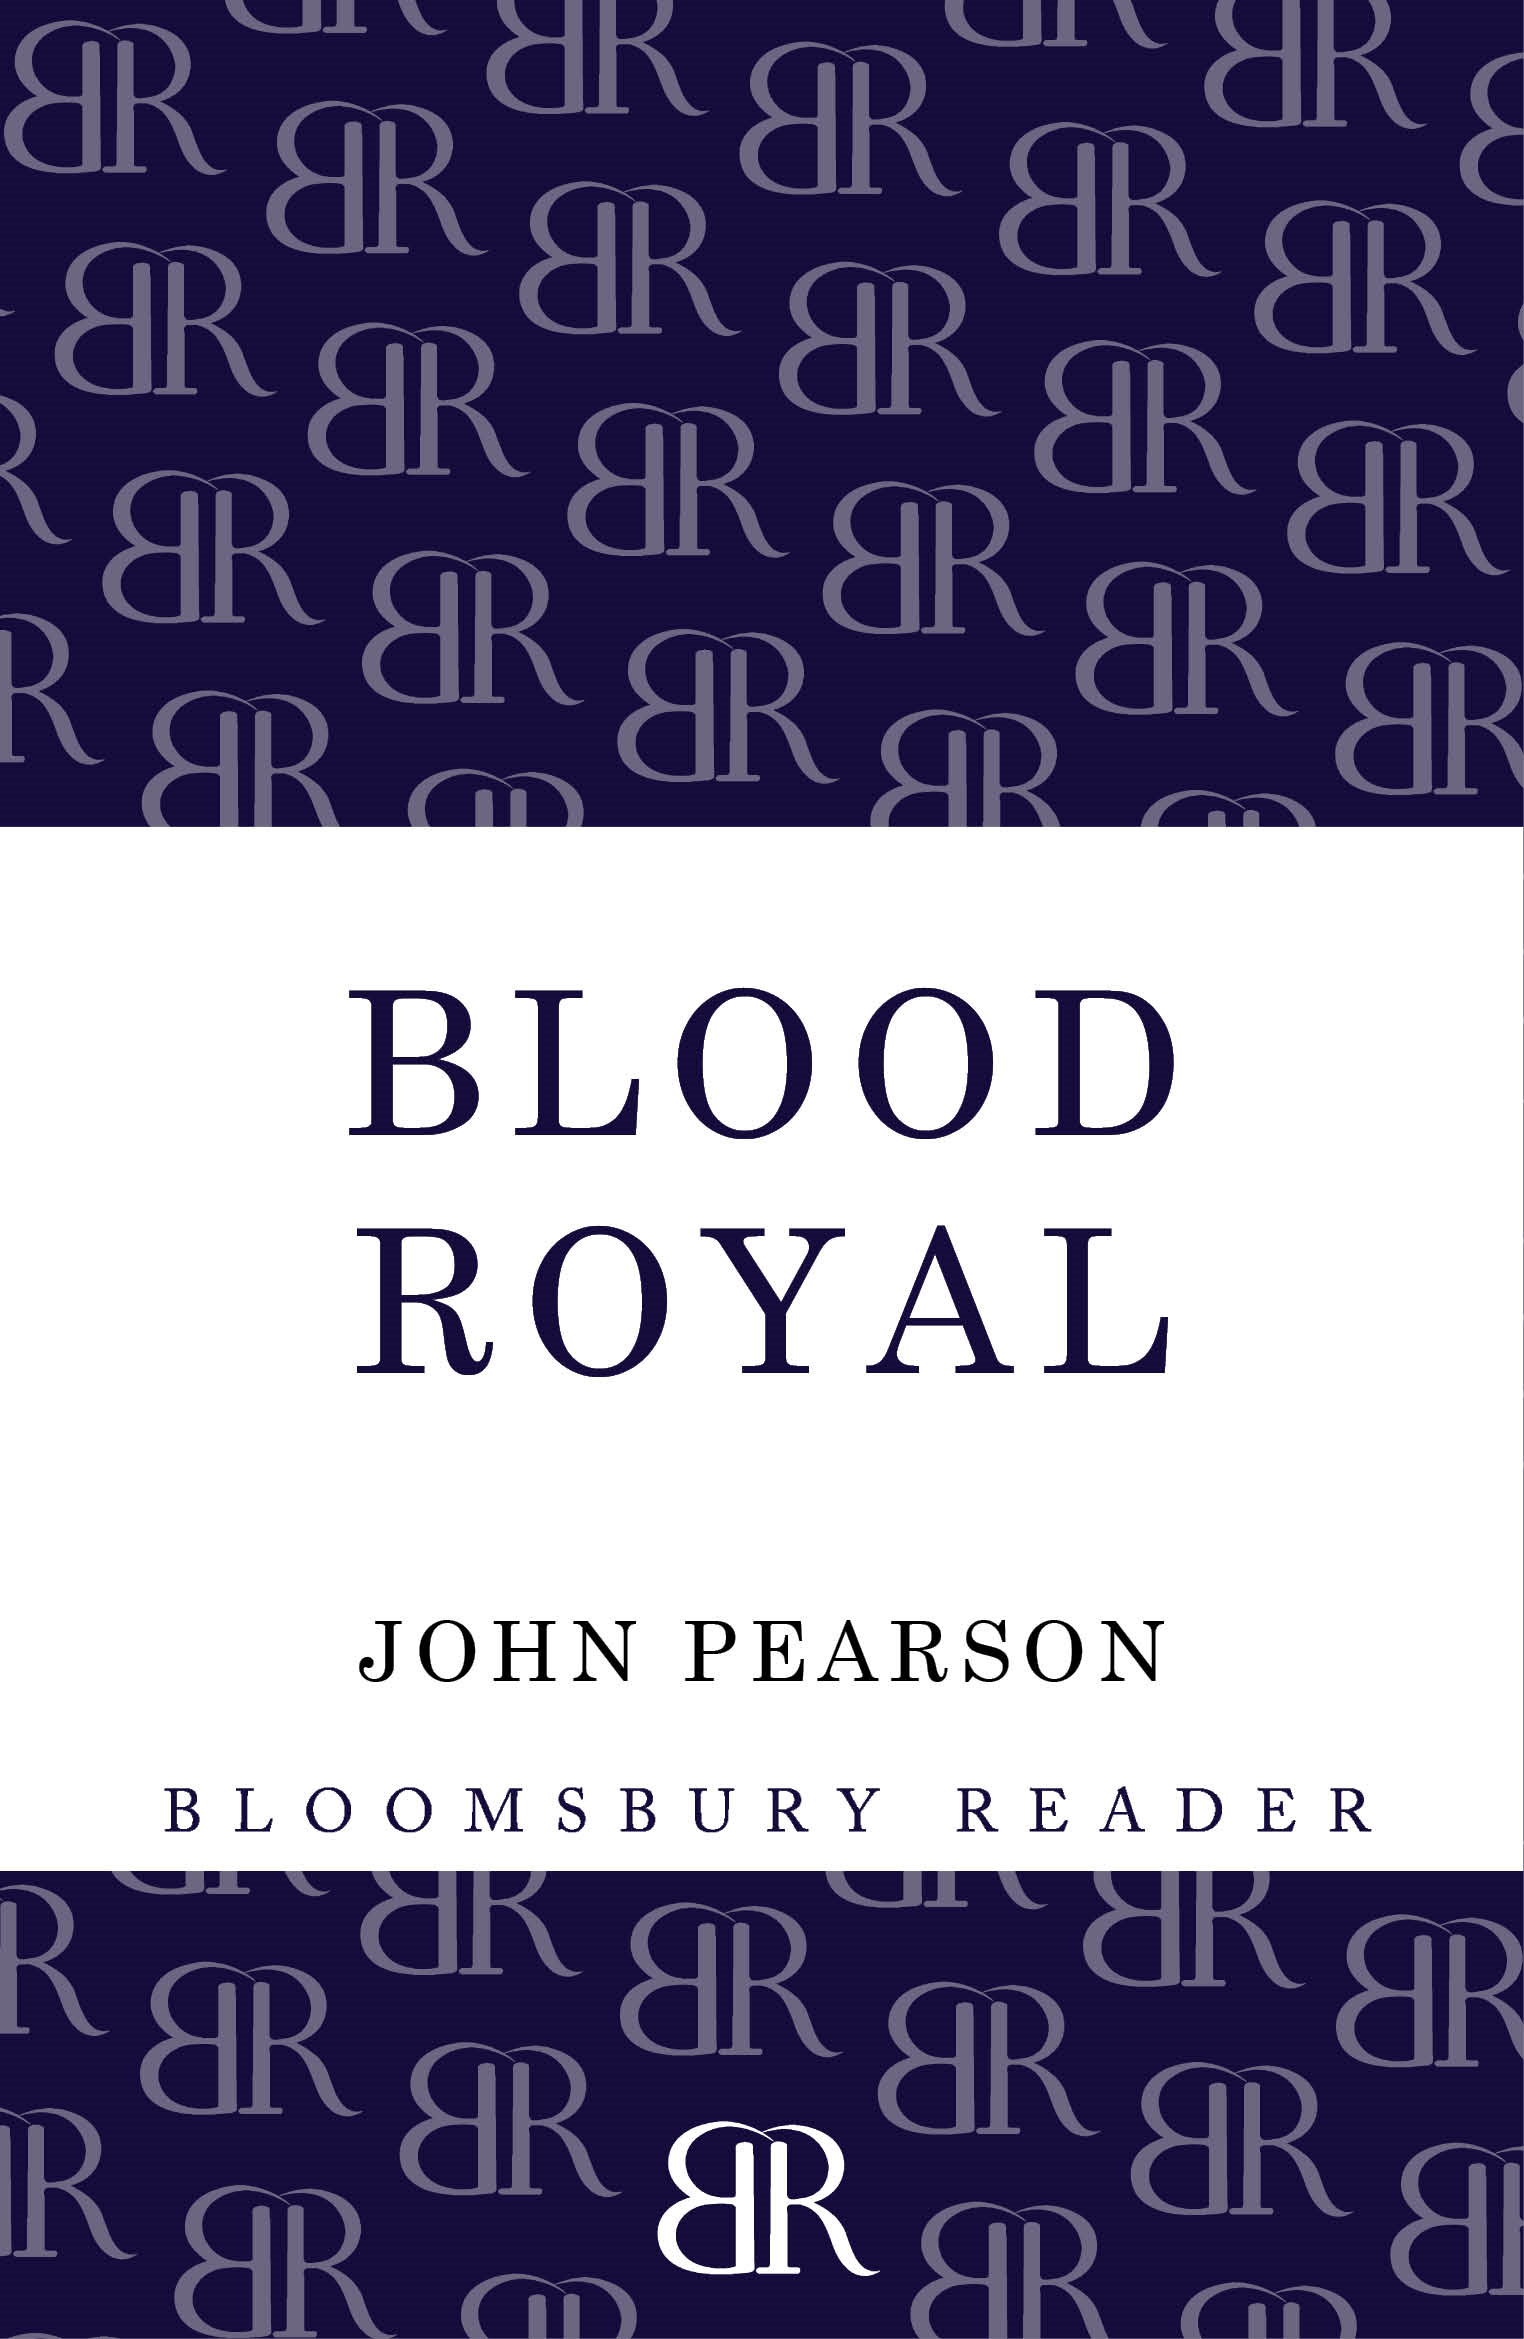 Blood Royal: The Story of the Spencers and the Royals By: John Pearson